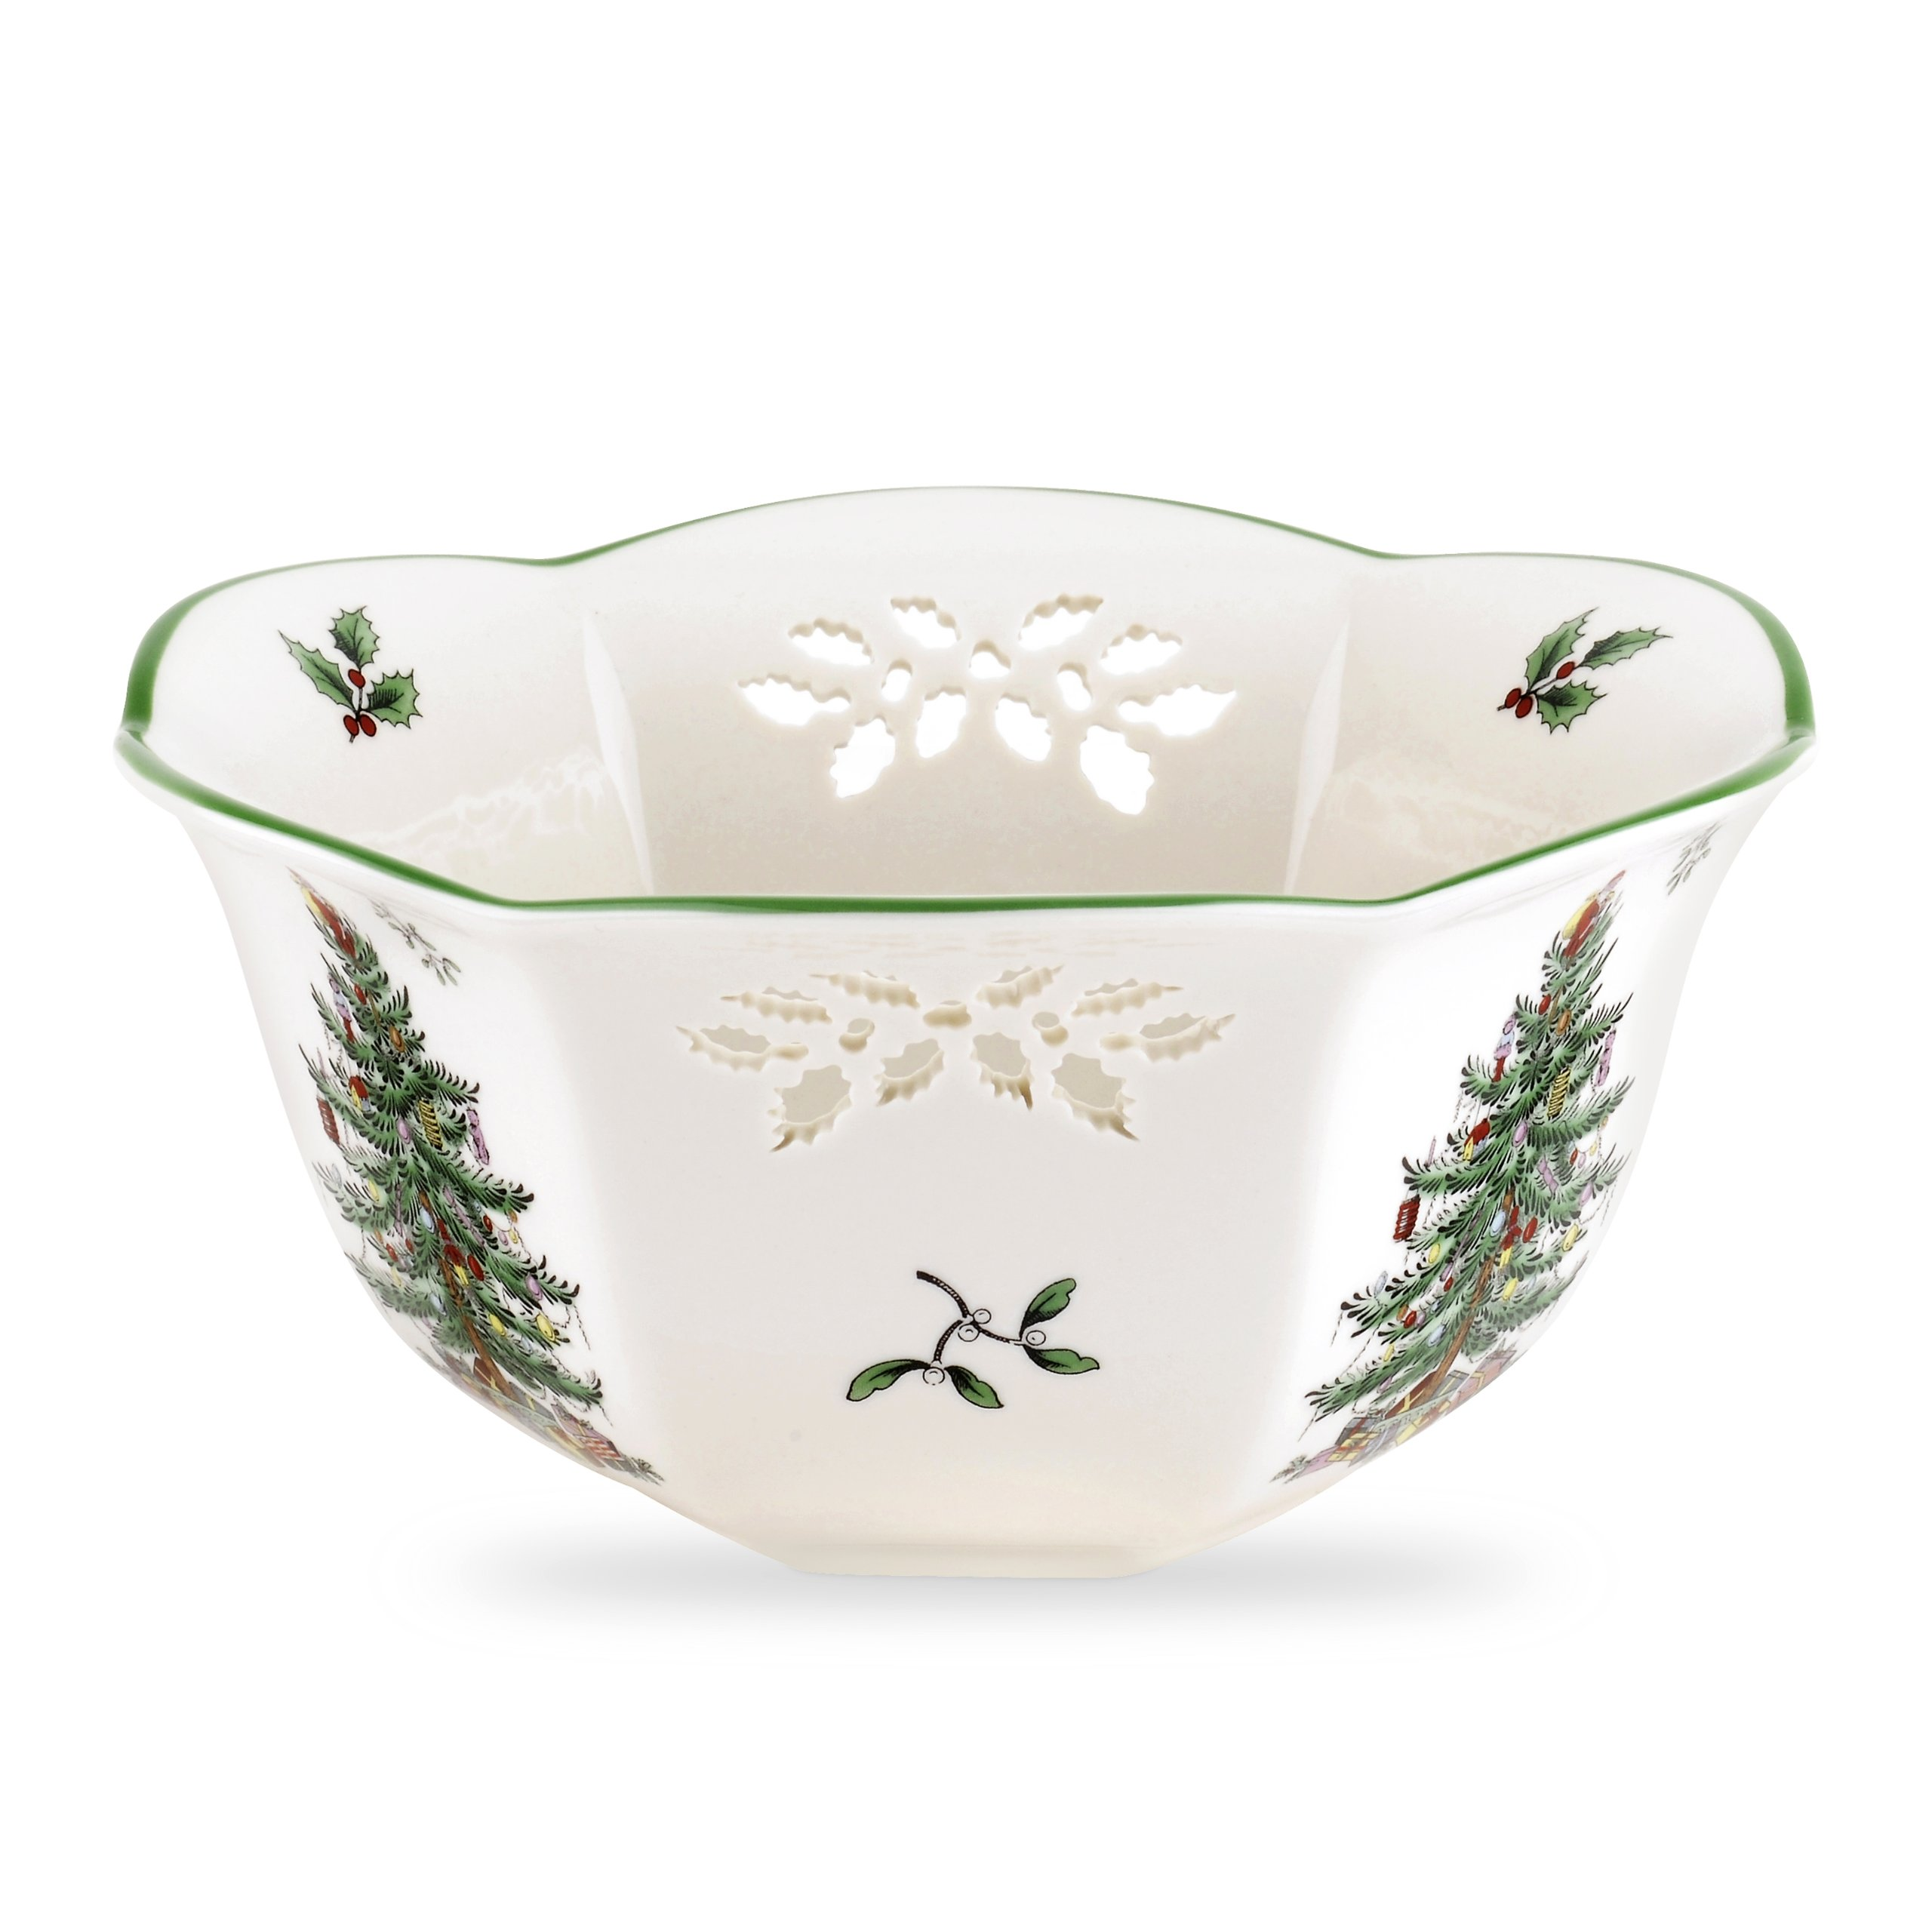 Spode Christmas Tree Pierced Nut Bowl